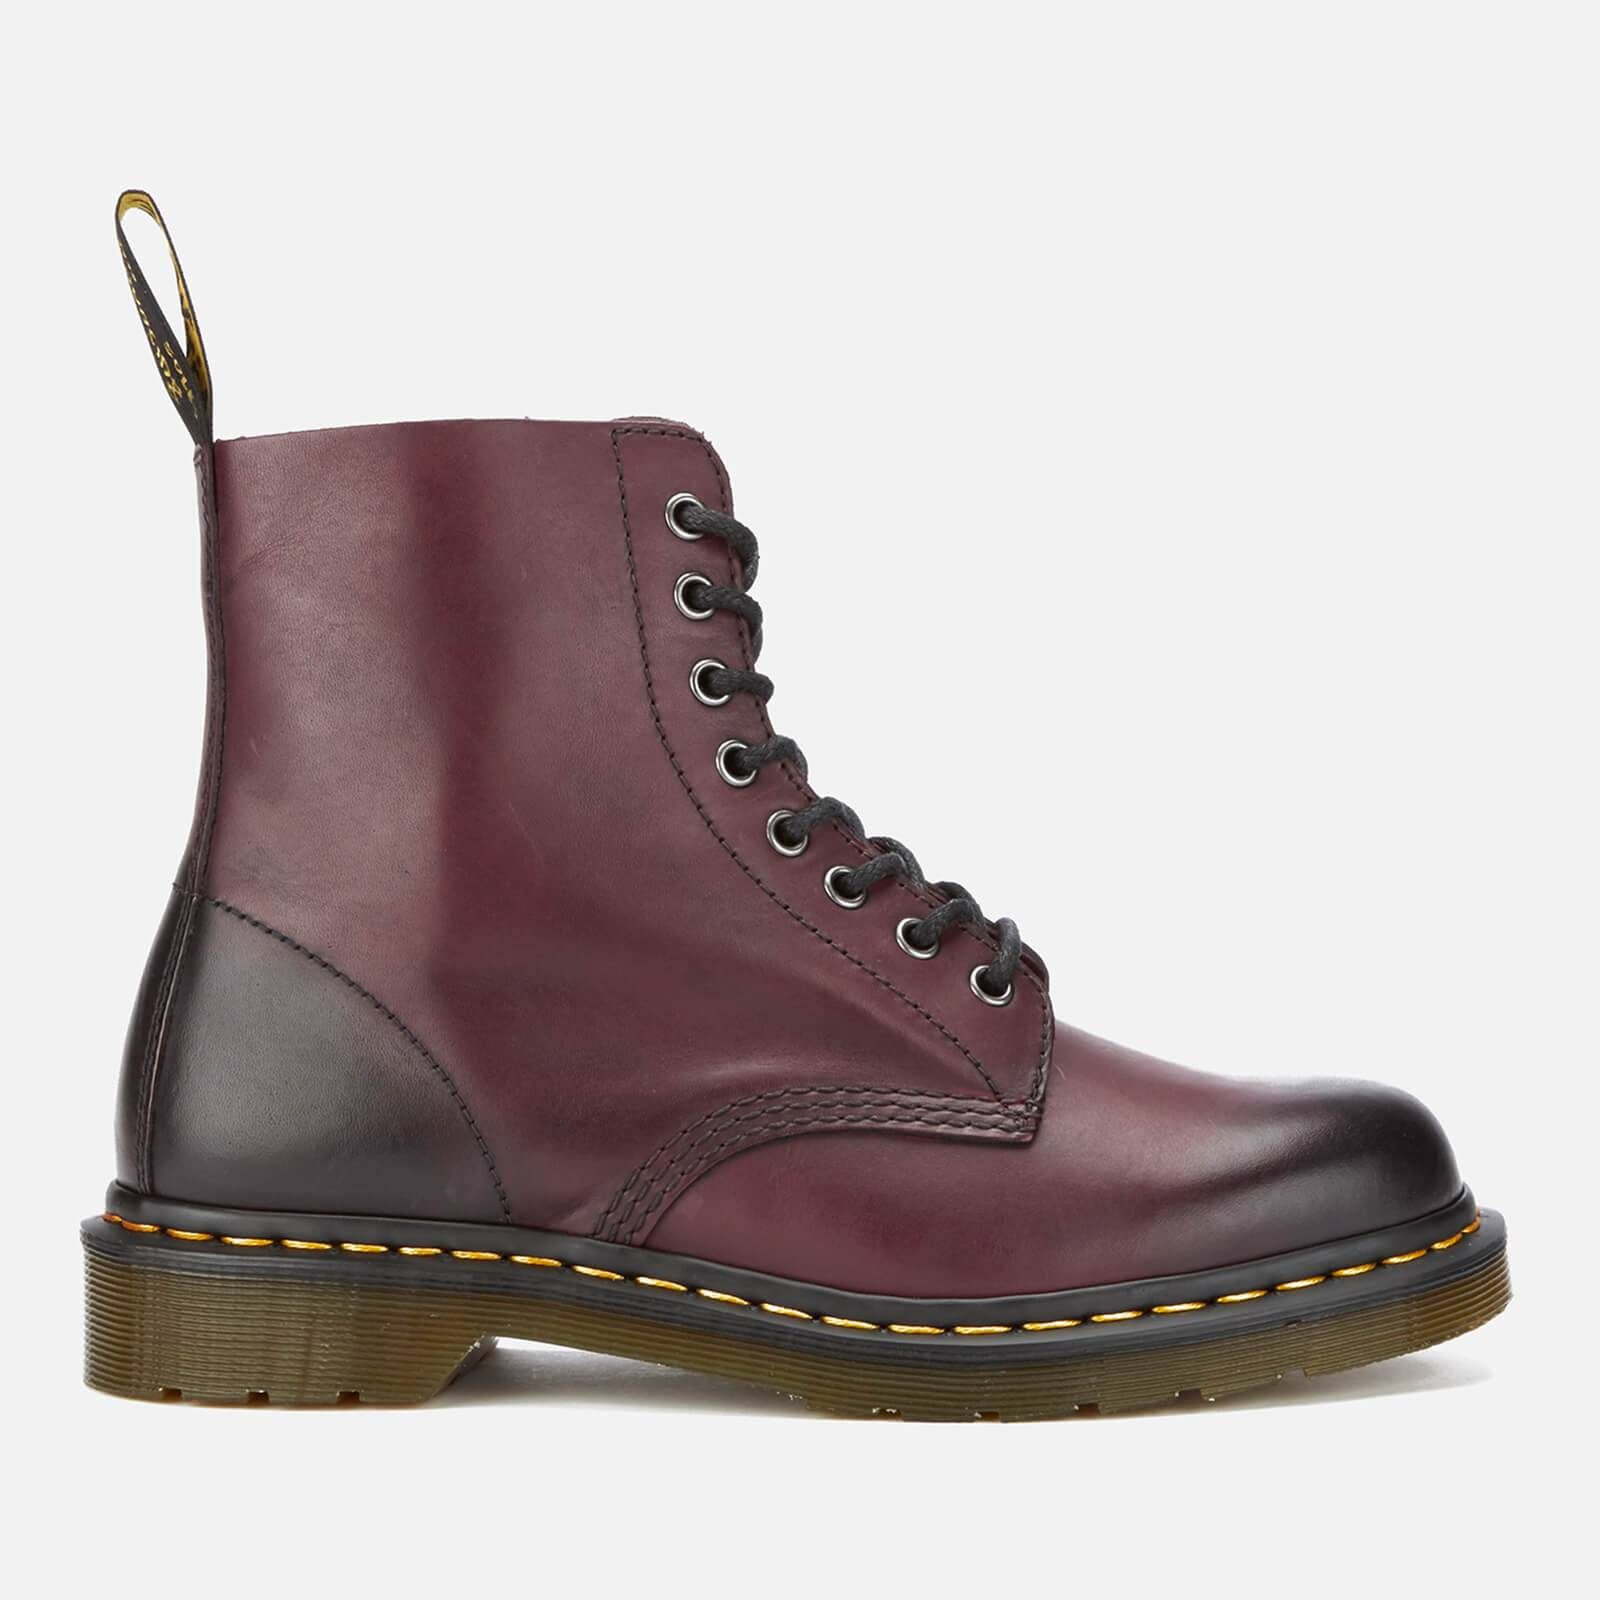 Dr. Martens Men's 1460 Pascal Antique Temperley Leather 8-Eye Boots - Cherry Red - UK 7 - Burgundy